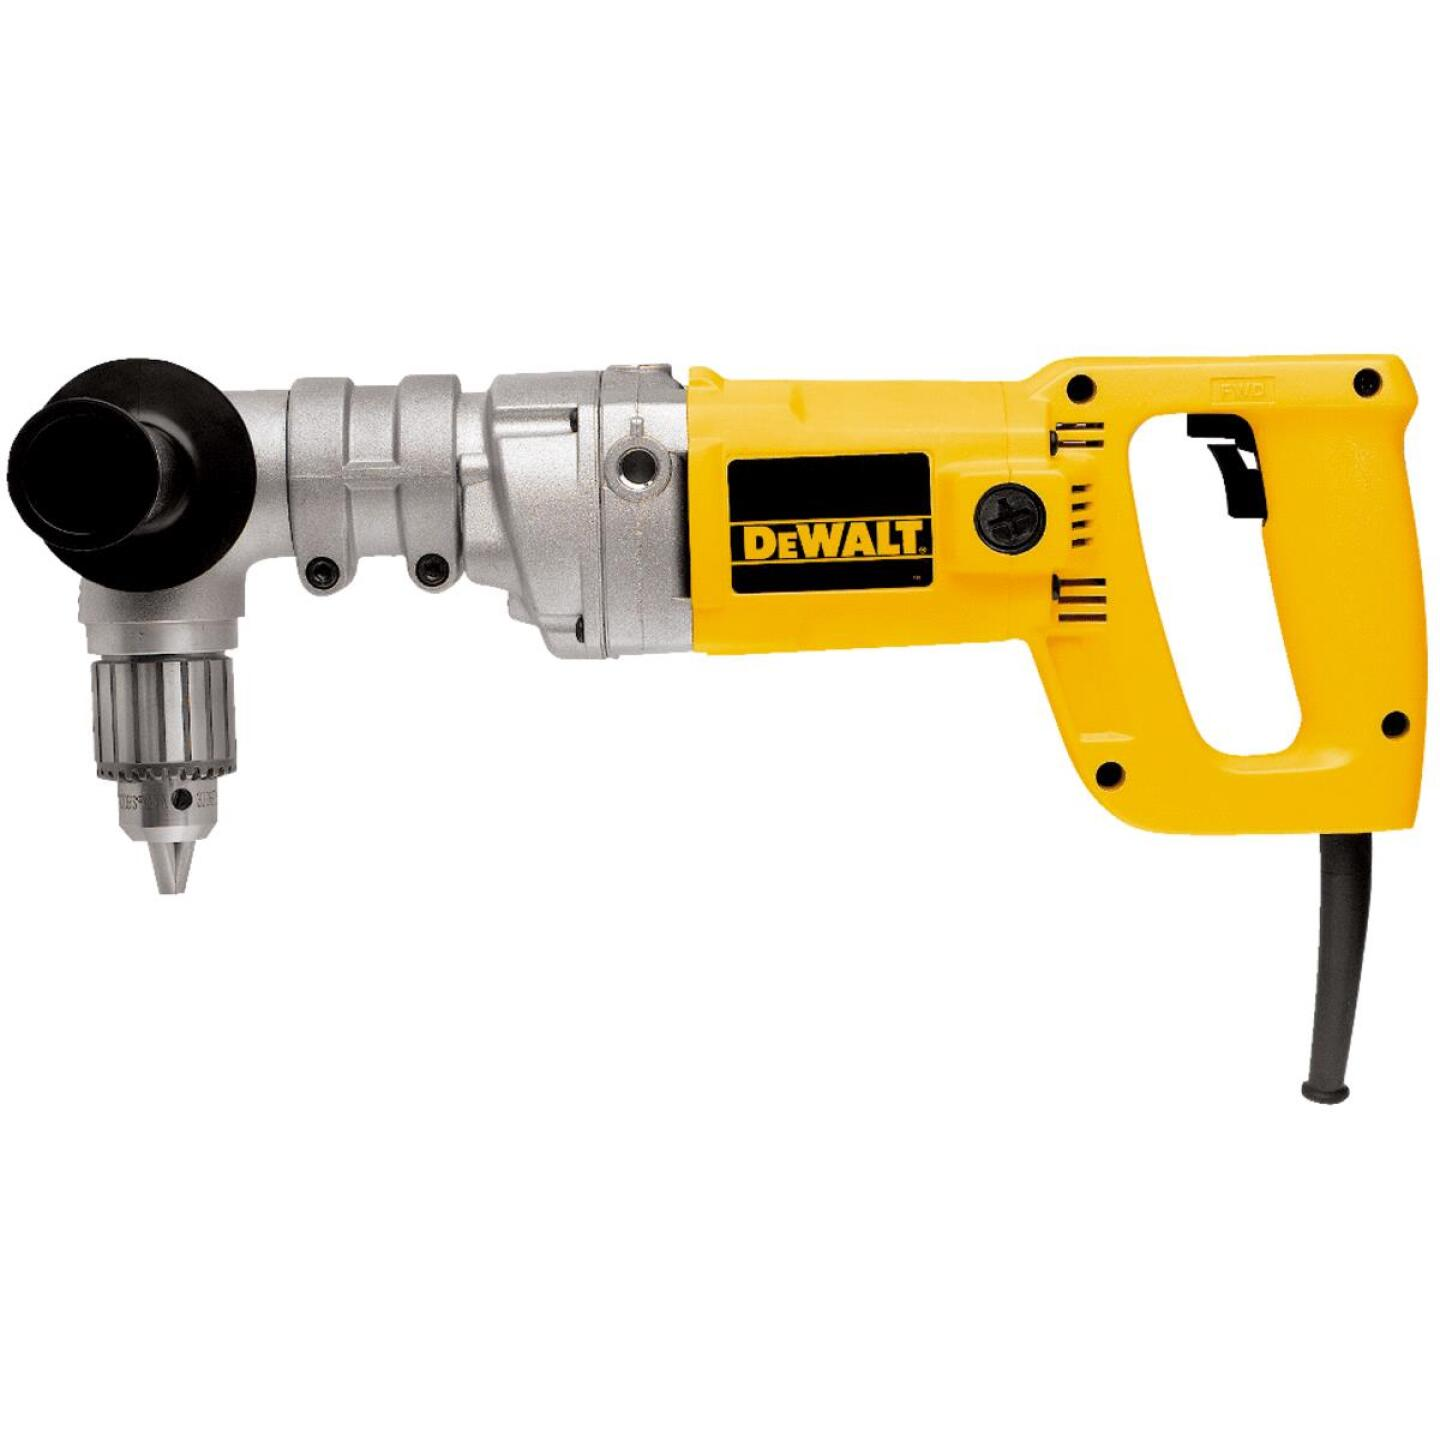 DeWalt 1/2 In. 7-Amp Keyed Electric Angle Drill with Case Image 1